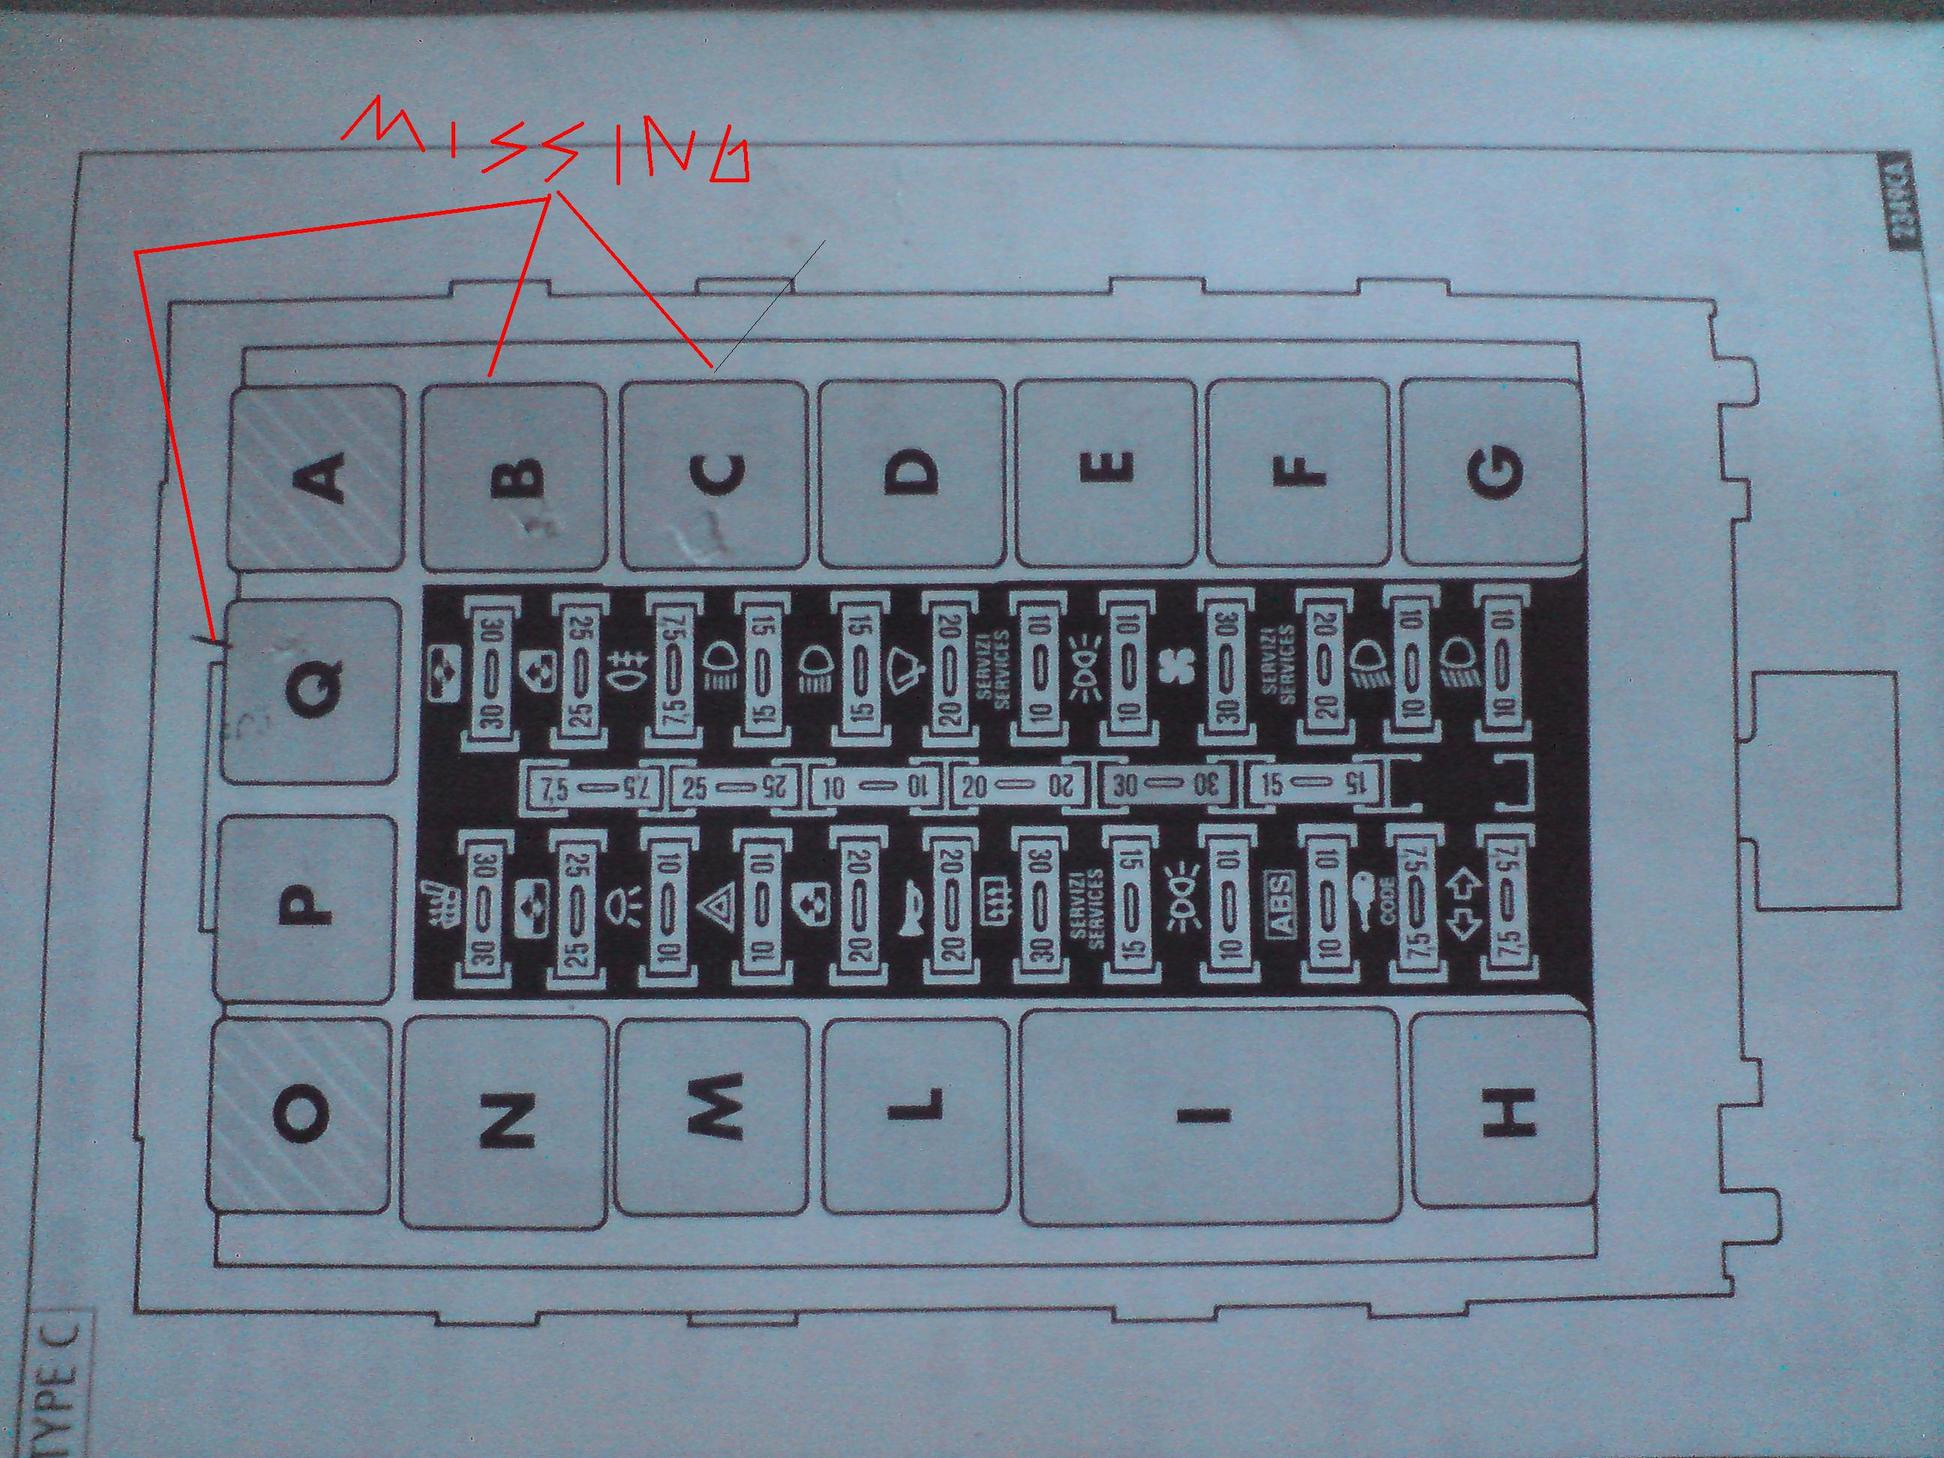 Alfa Romeo 146 Wiring Diagram Fuse Box Schematics Rh Readinghypnotherapist Co Uk Dr3 Lucas